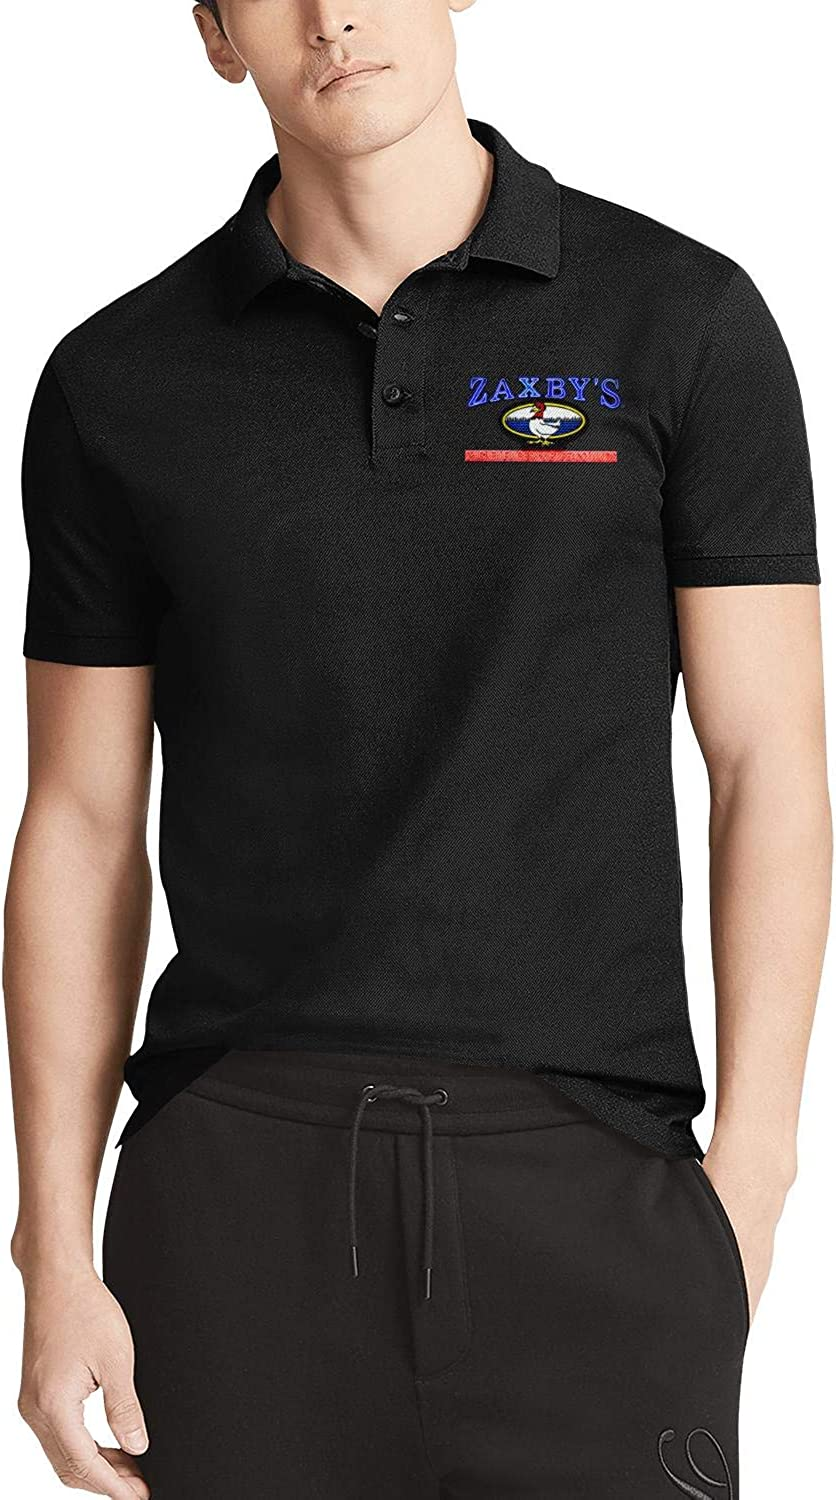 Guitar Men Regular Fit Cotton Polo Shirts Classic Short Sleeve Polo Black